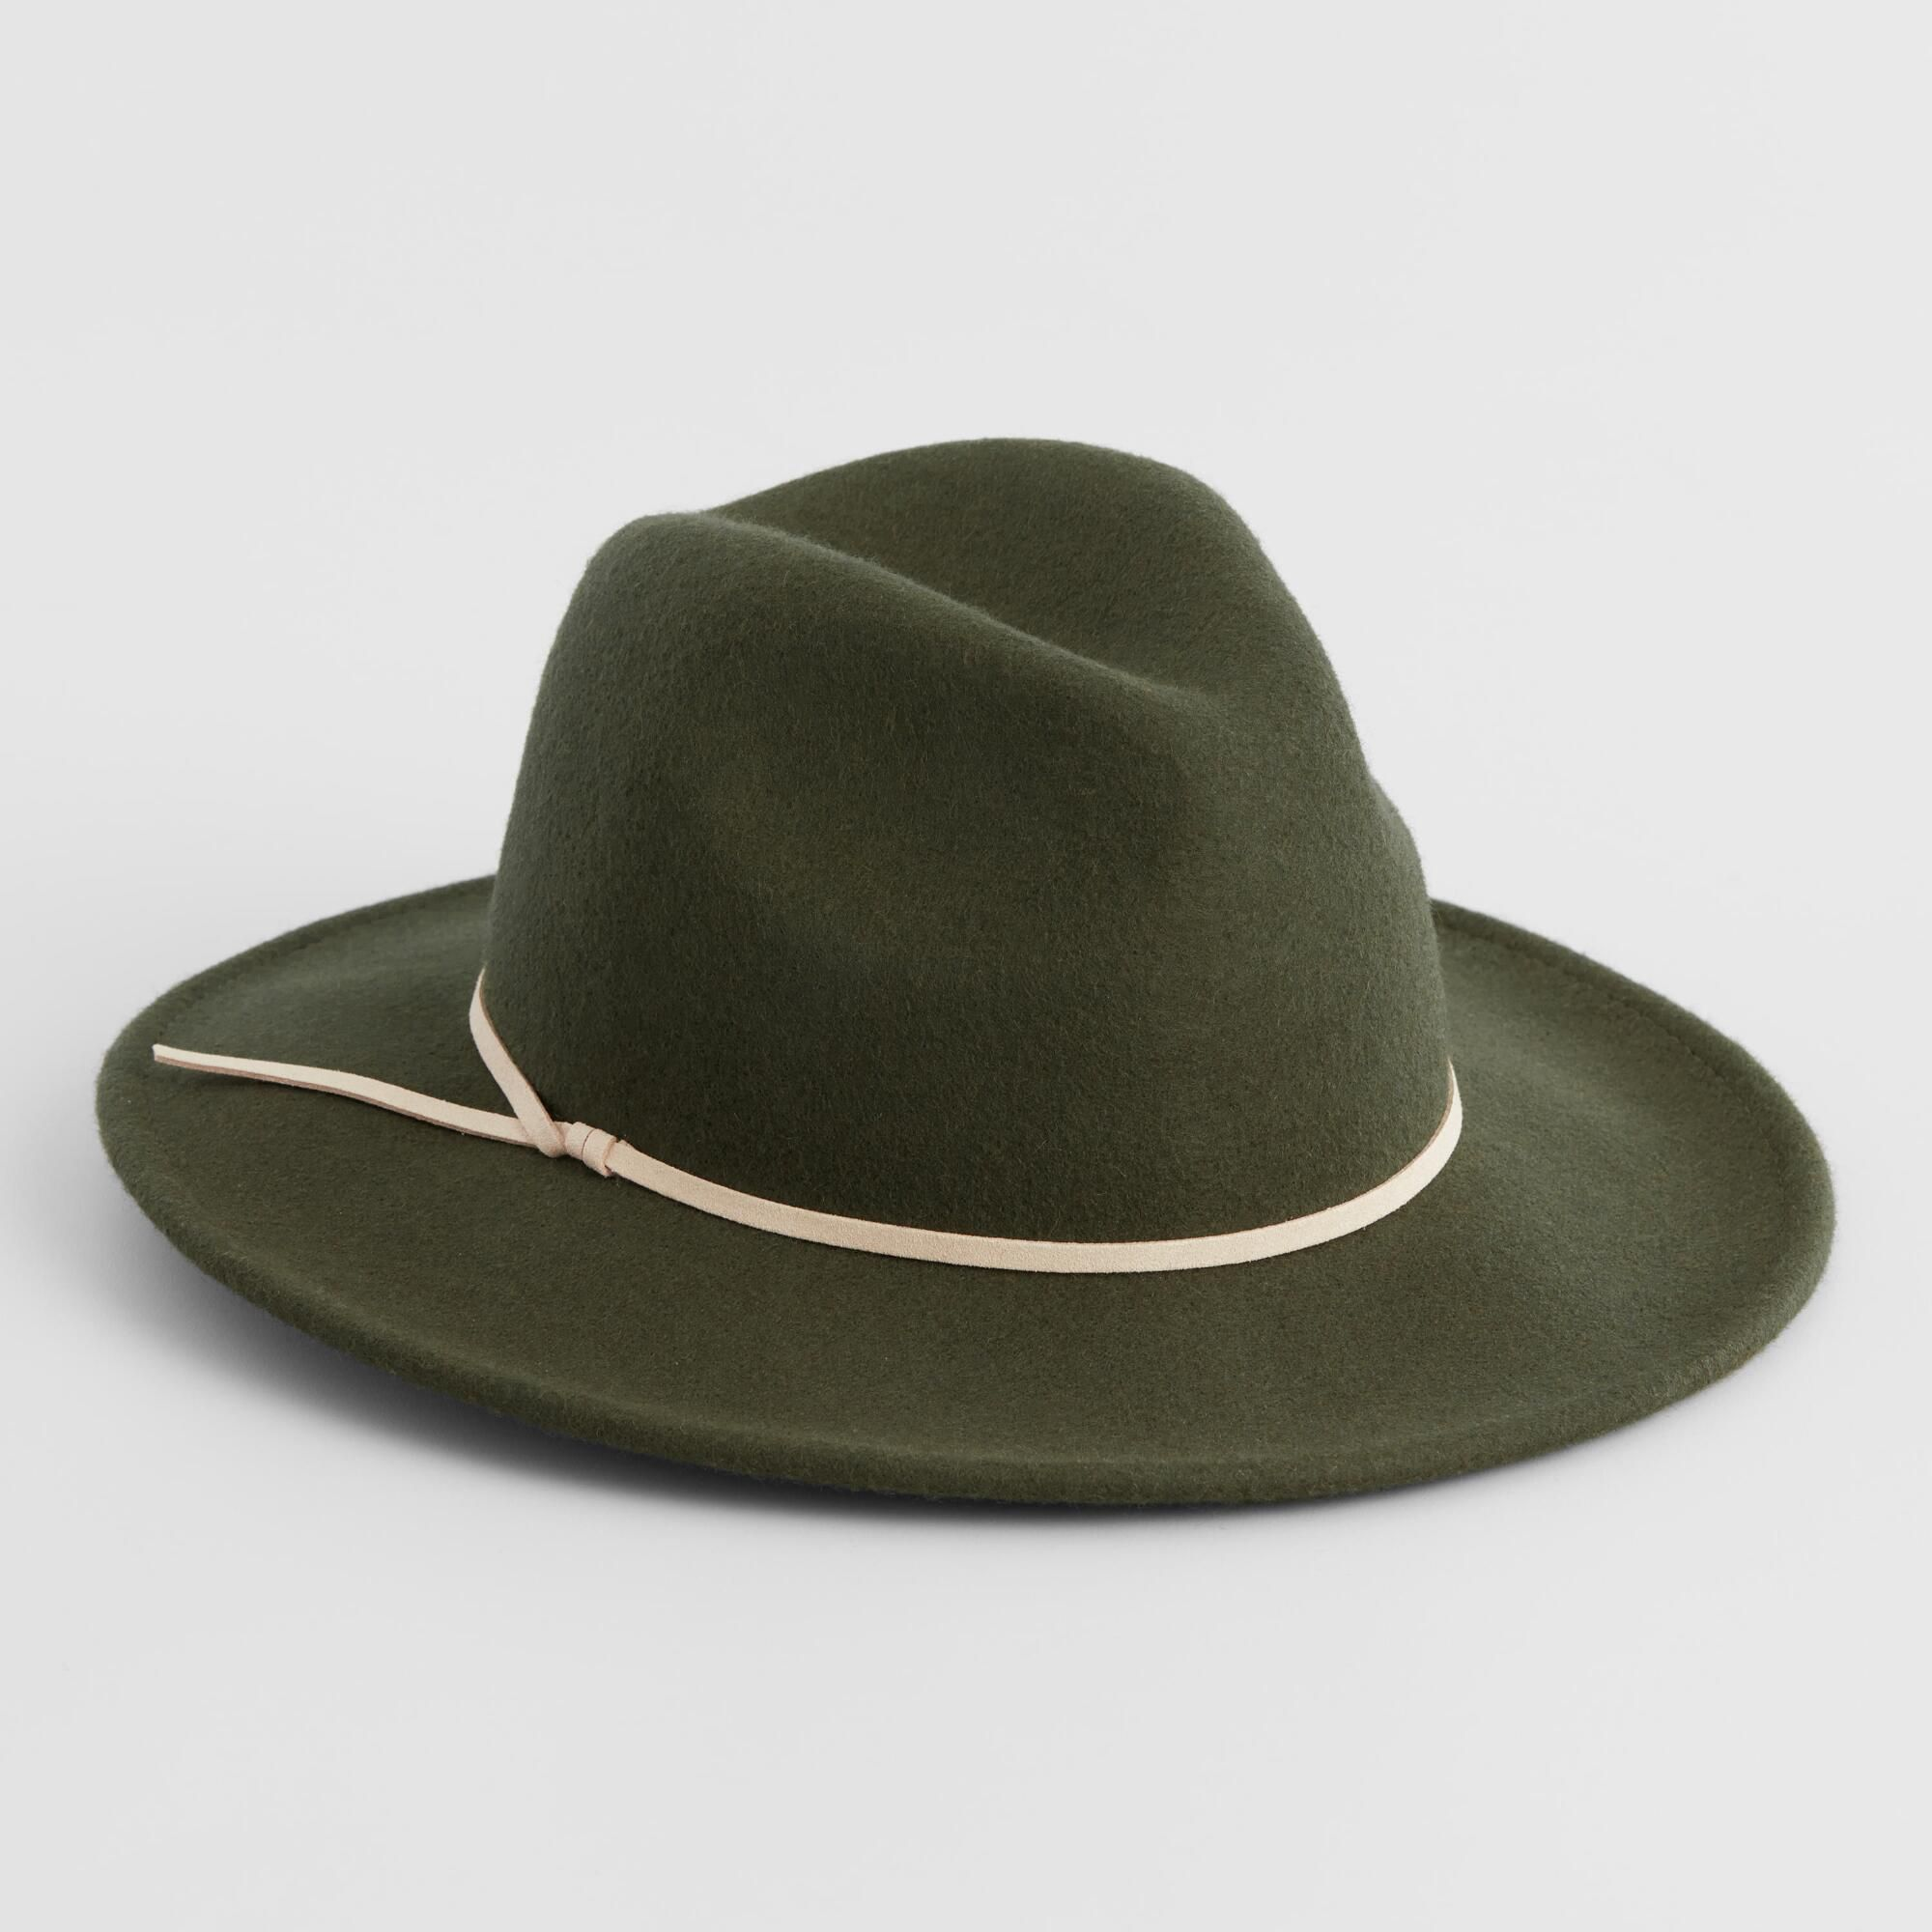 07908437d158 Olive Green And Tan Trim Wool Rancher Hat by World Market in 2019 ...